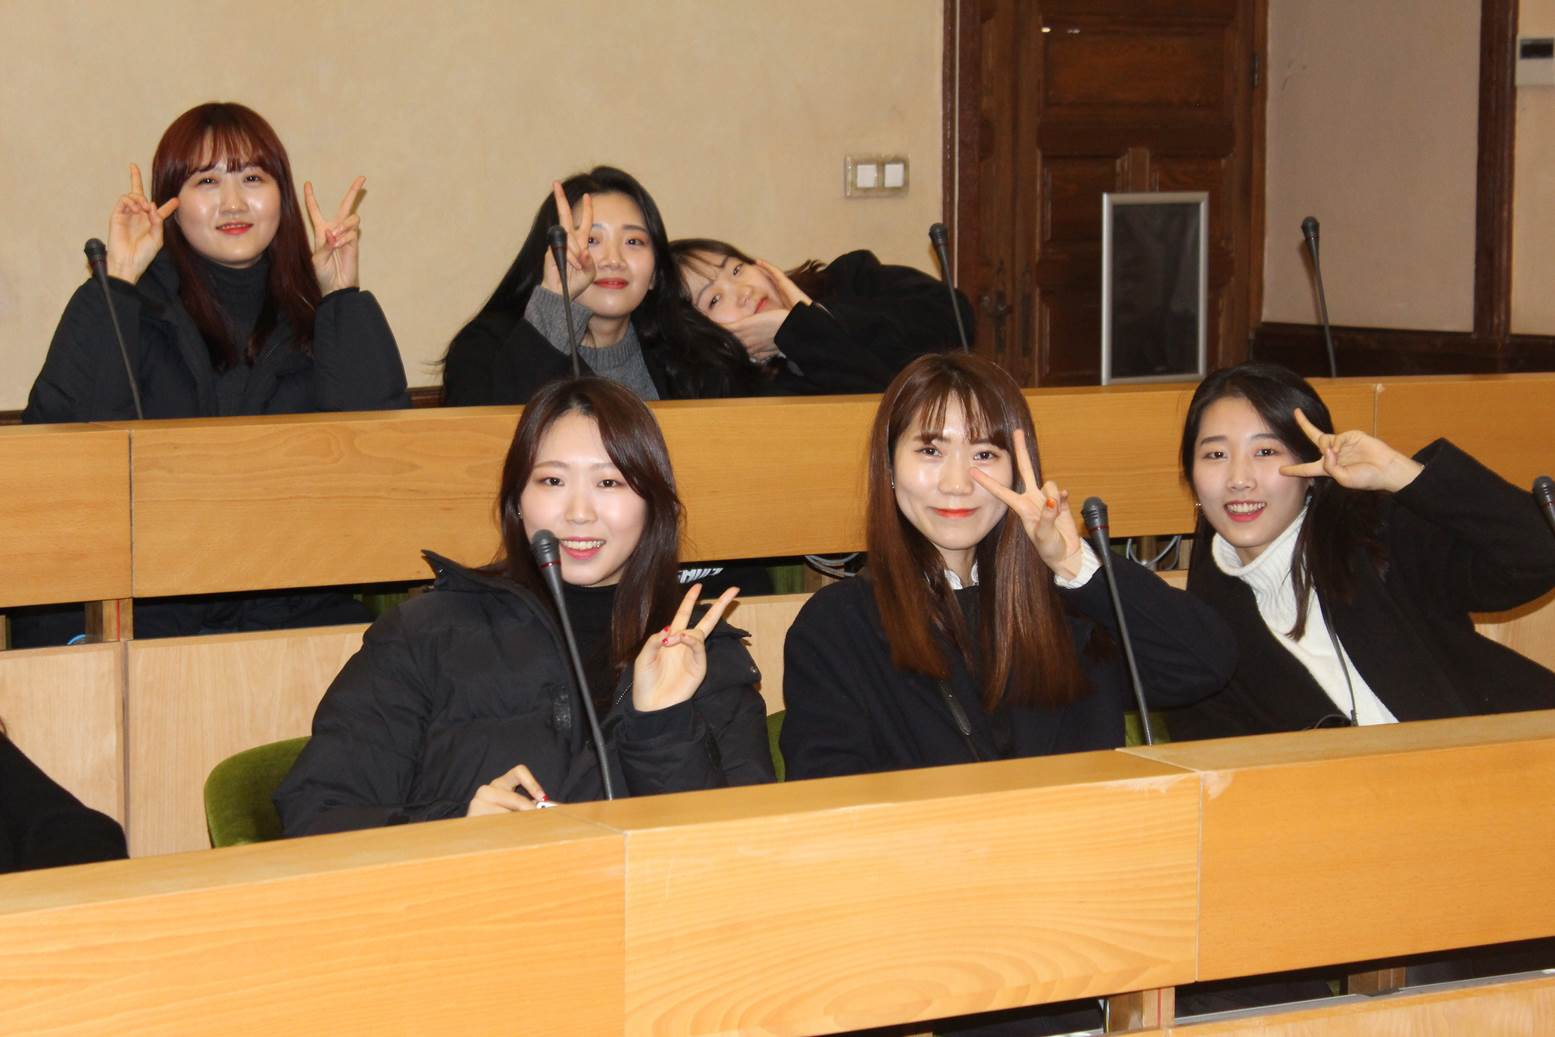 Closing ceremony (Gachon University Graduation, South Korea)